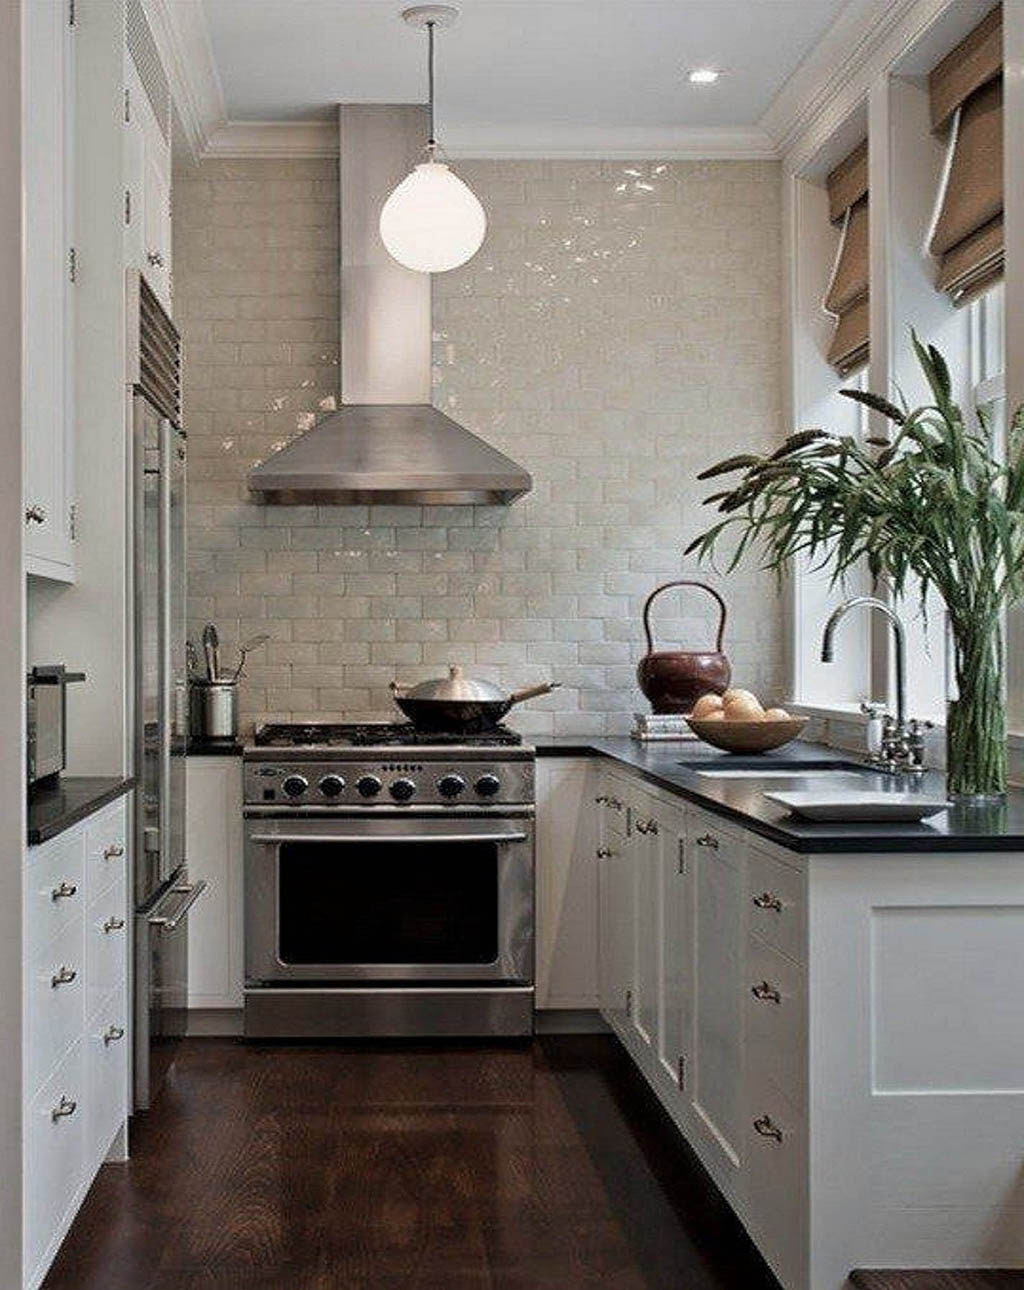 4 Ways to Make the Most of a Small Kitchen Remodel